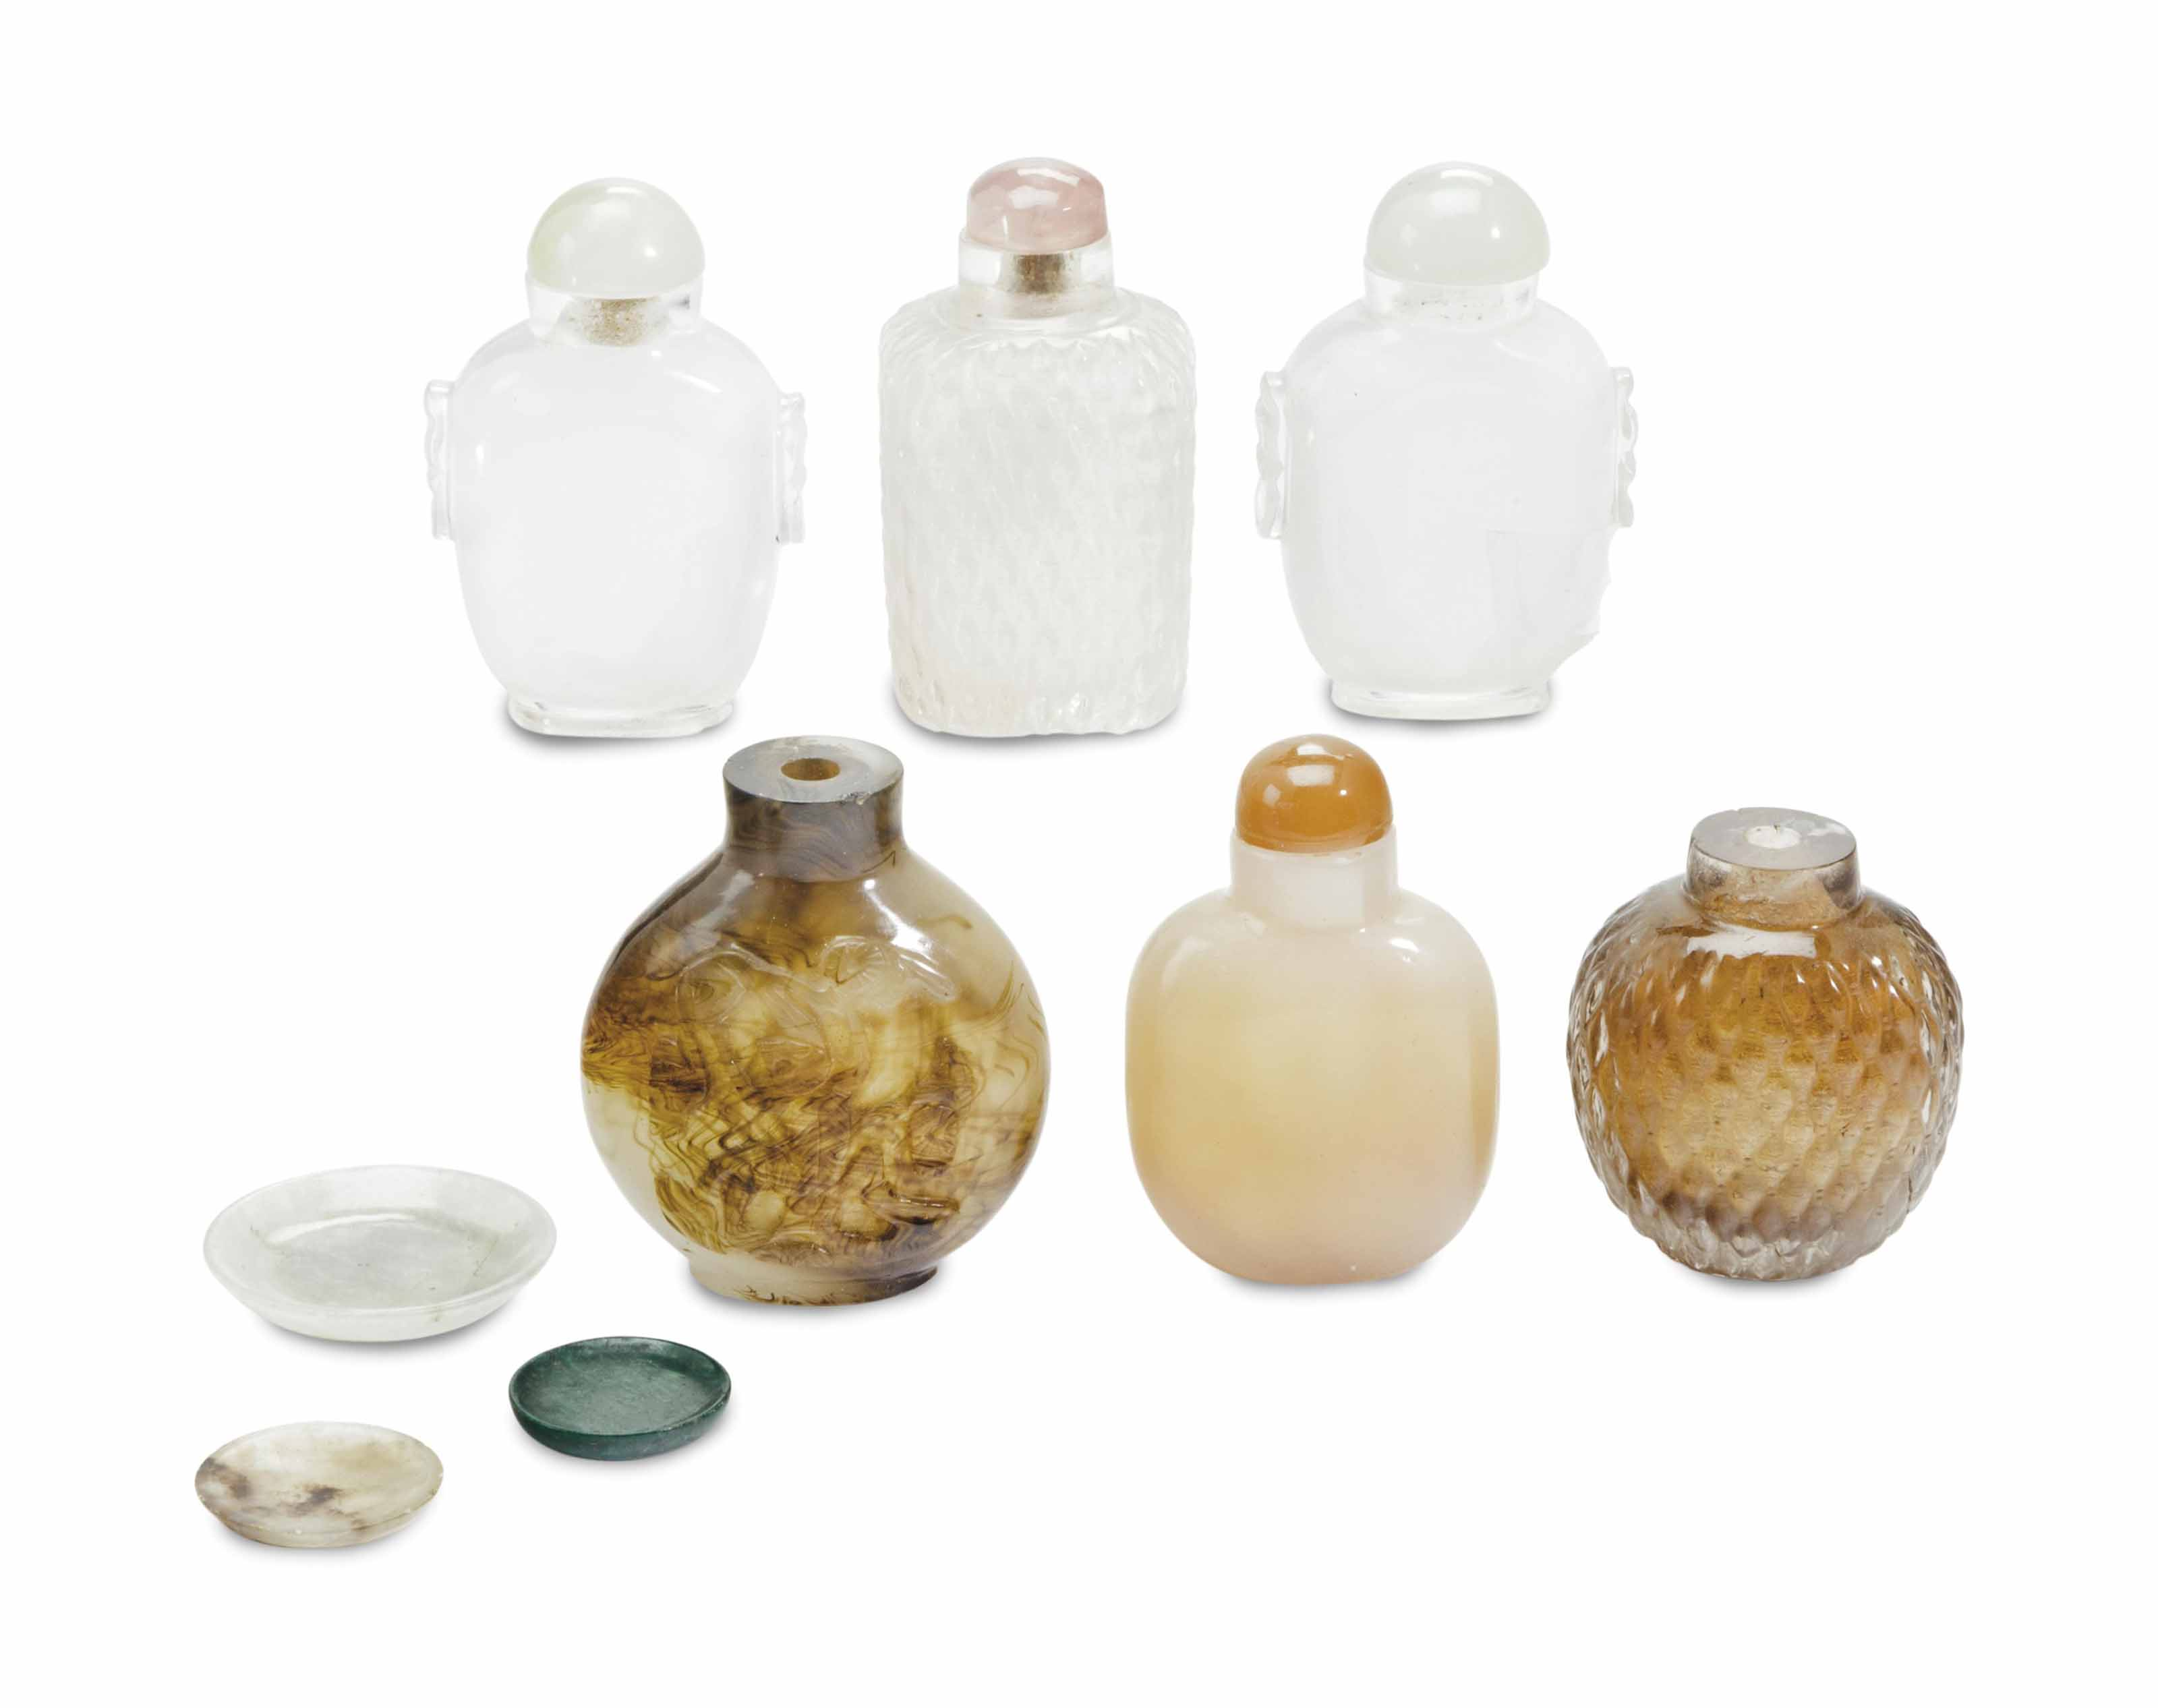 SIX CHINESE HARDSTONE AND GLASS SNUFF BOTTLES, AND THREE HARDSTONE SNUFF DISHES